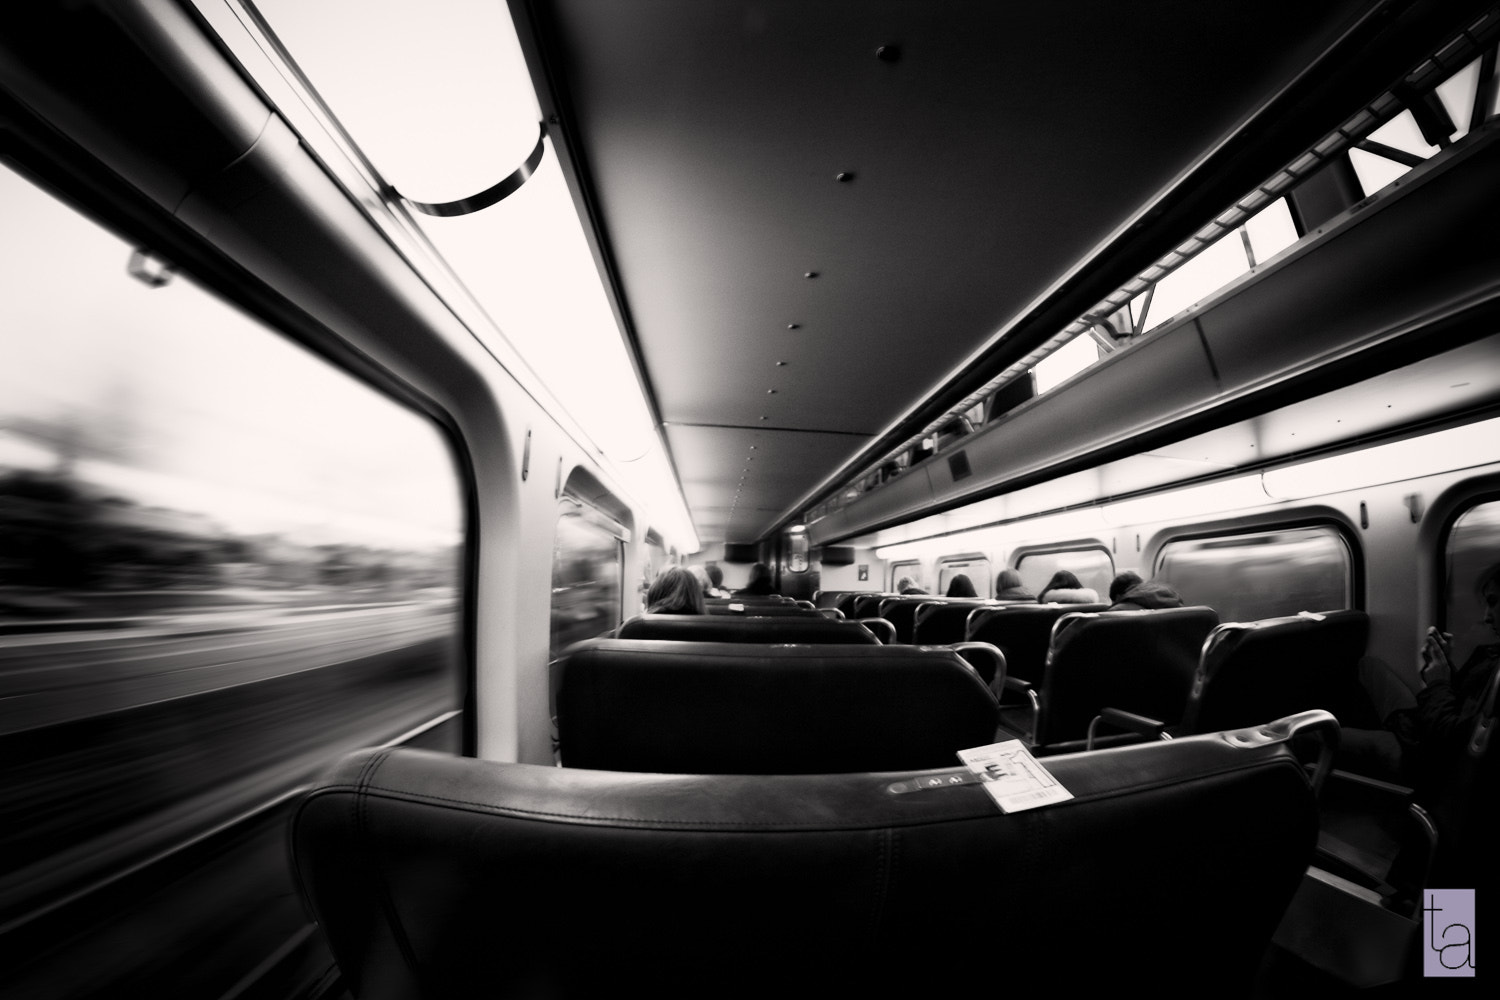 Photograph In transit of time by Tatiana Avdjiev on 500px